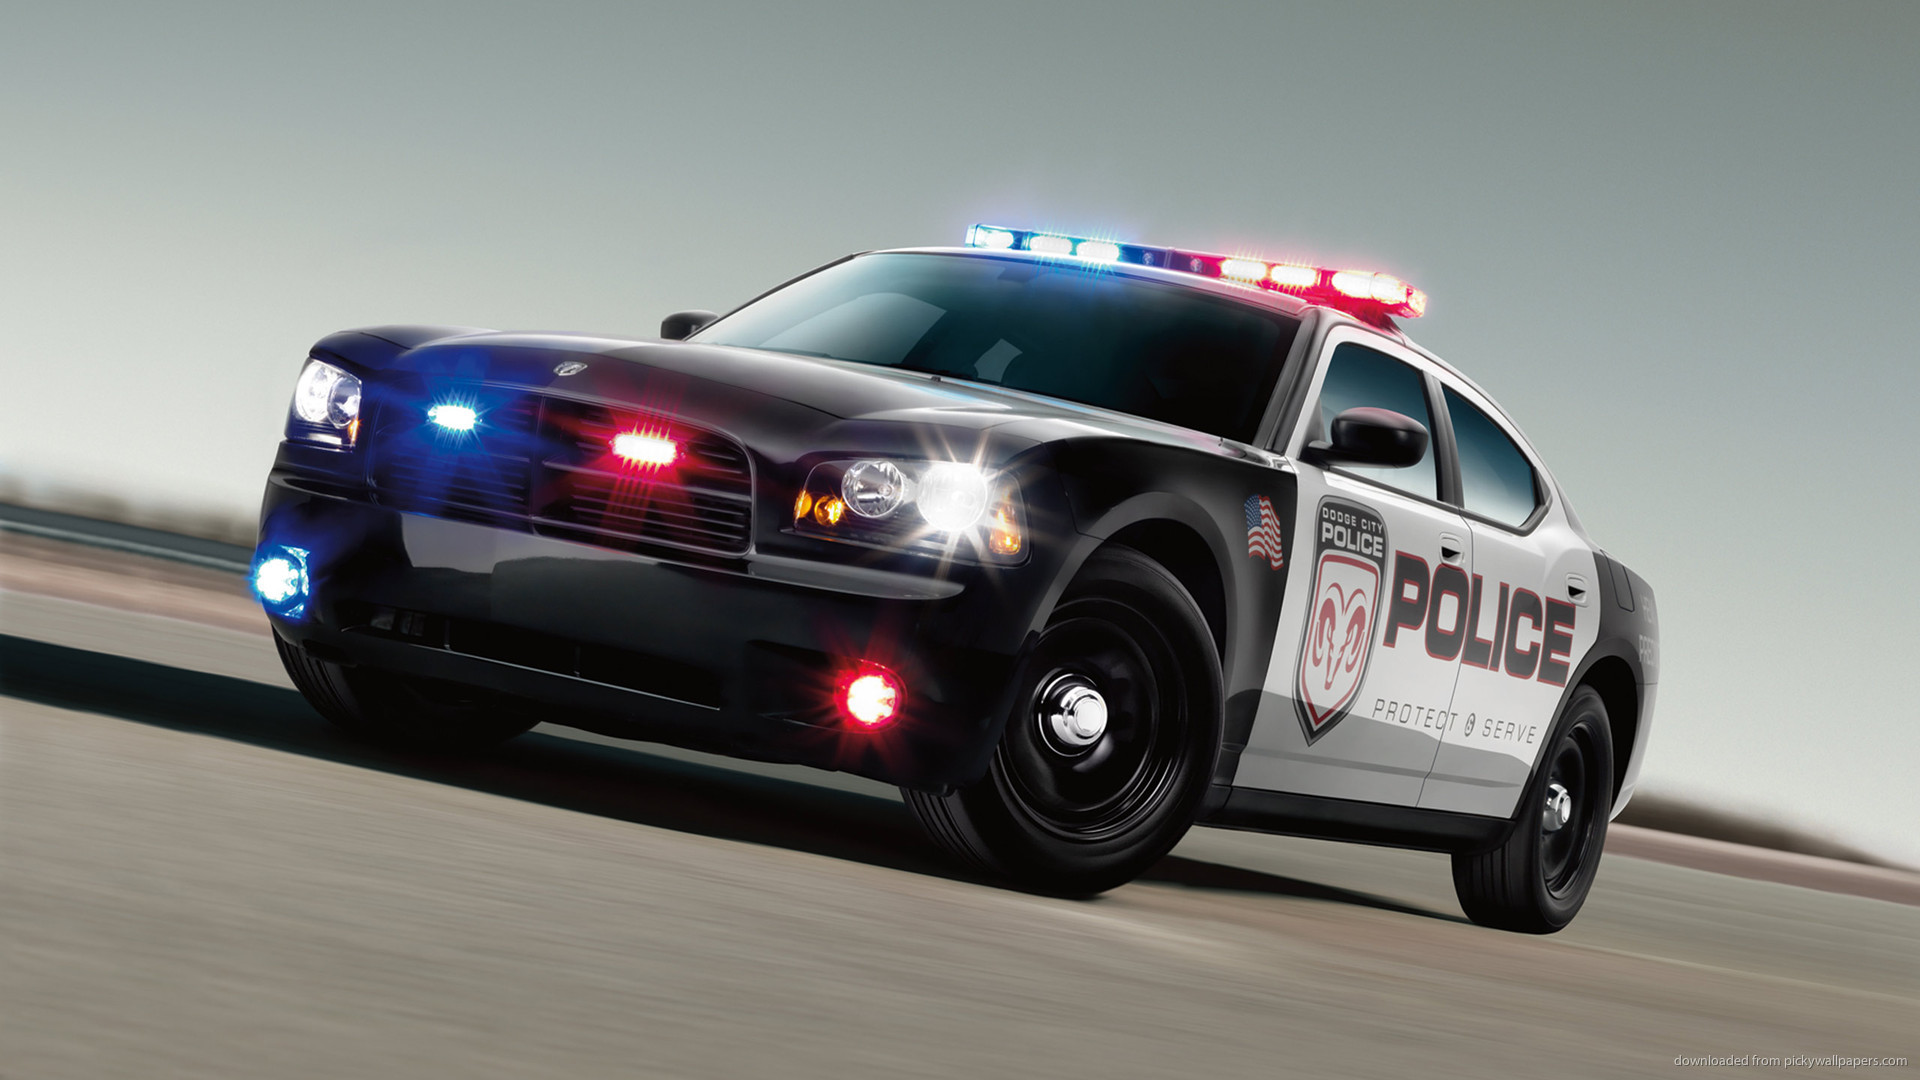 High Definition Police Wallpaper – Full HD Background